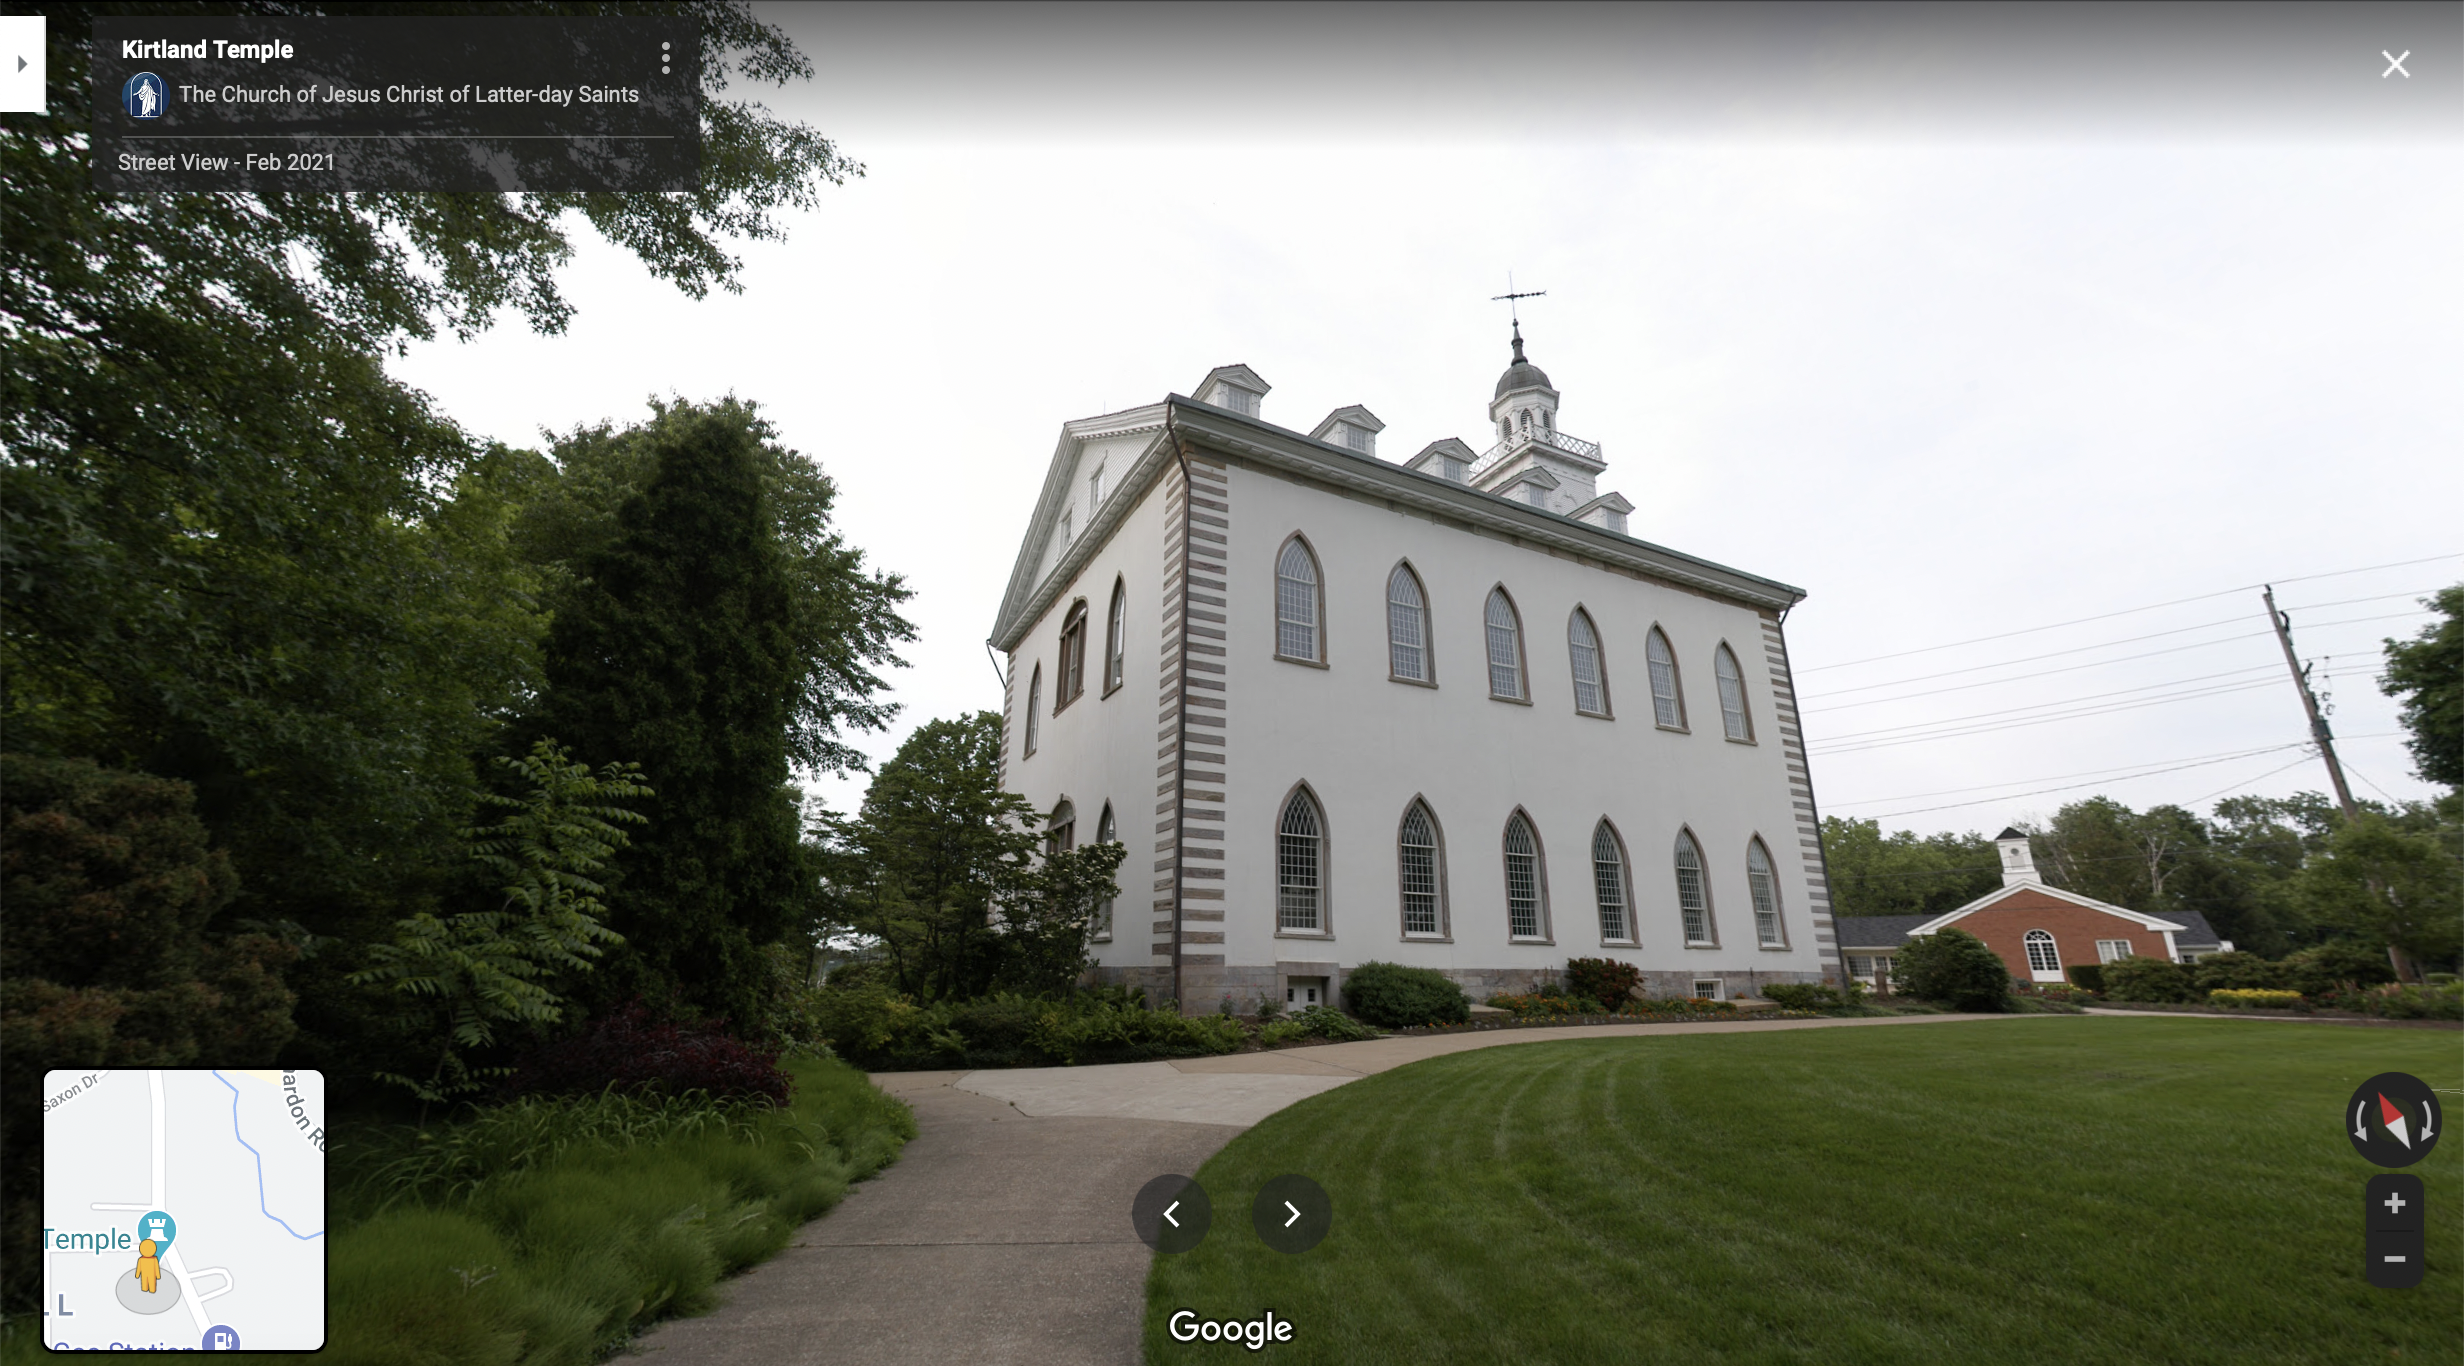 Screenshot of the Google Maps 360 view of the grounds of the Kirtland Temple